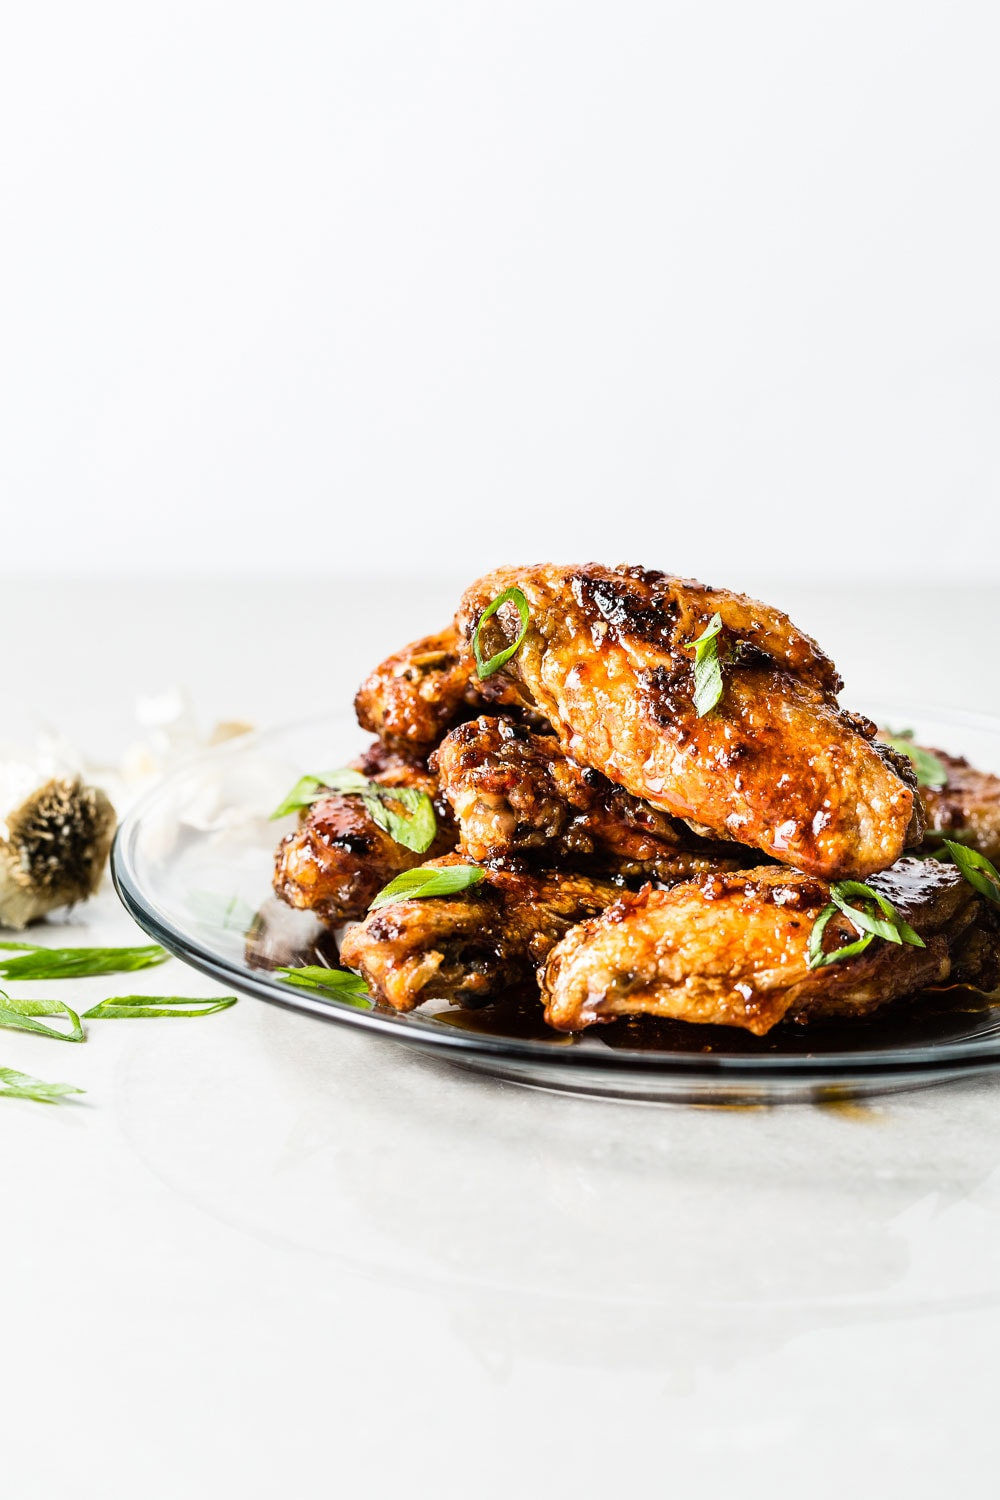 Honey-Garlic Air Fried Chicken Wings stacked on glass plate